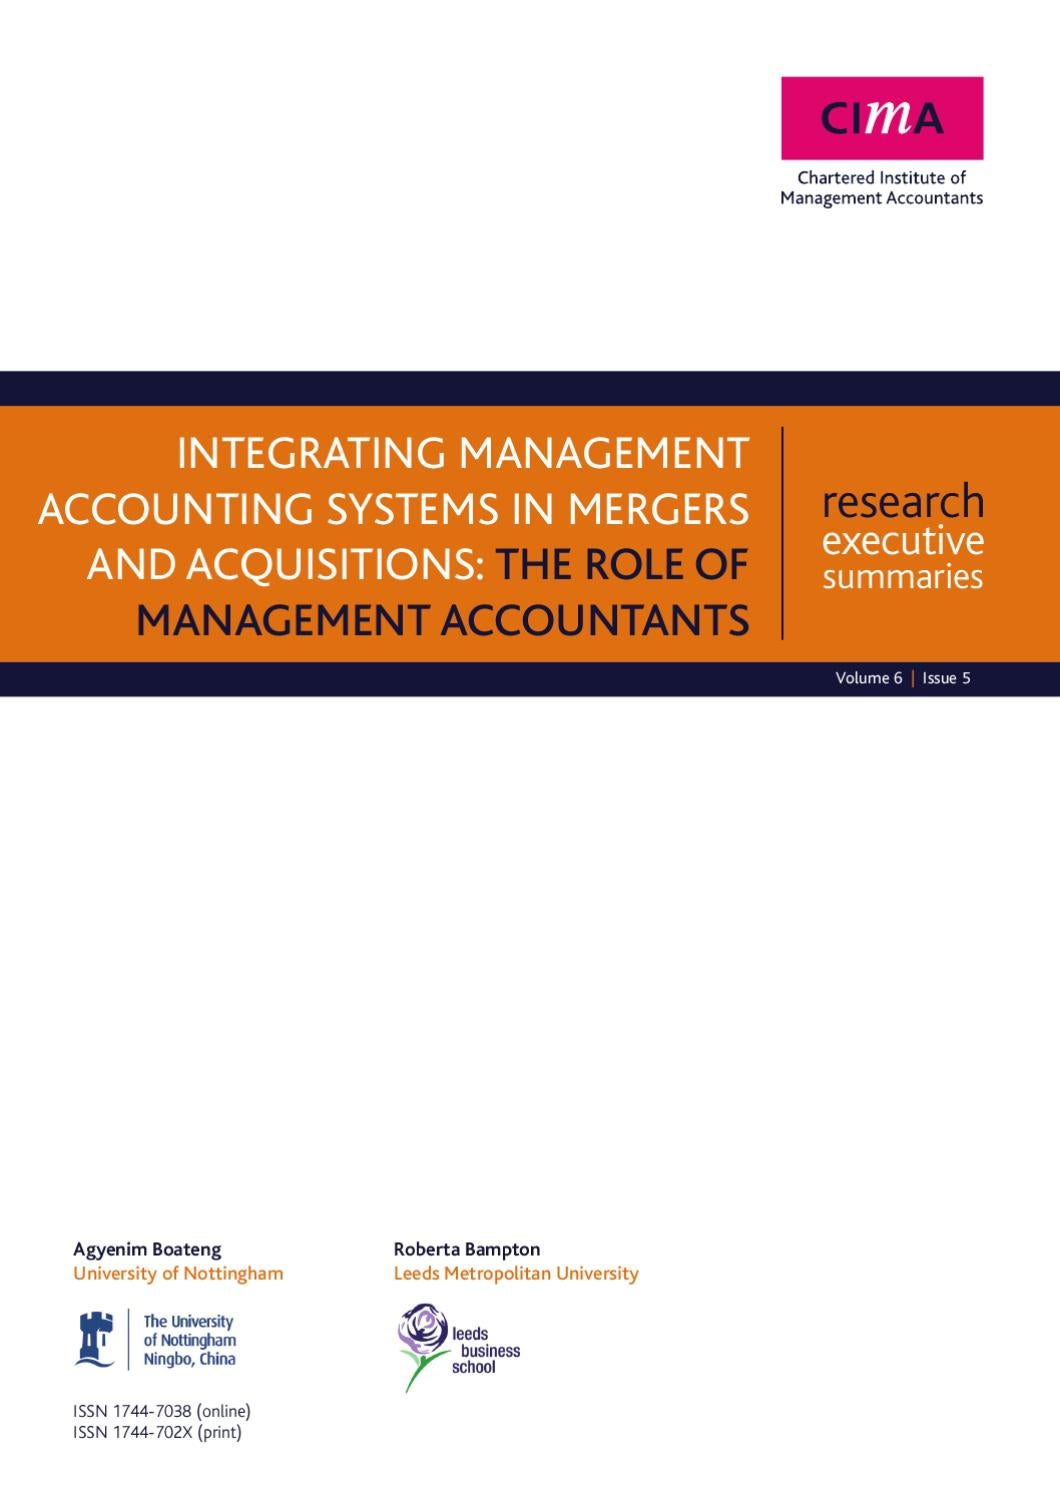 Merger Integration at Bank of America: The TrustWeb Project Harvard Case Solution & Analysis